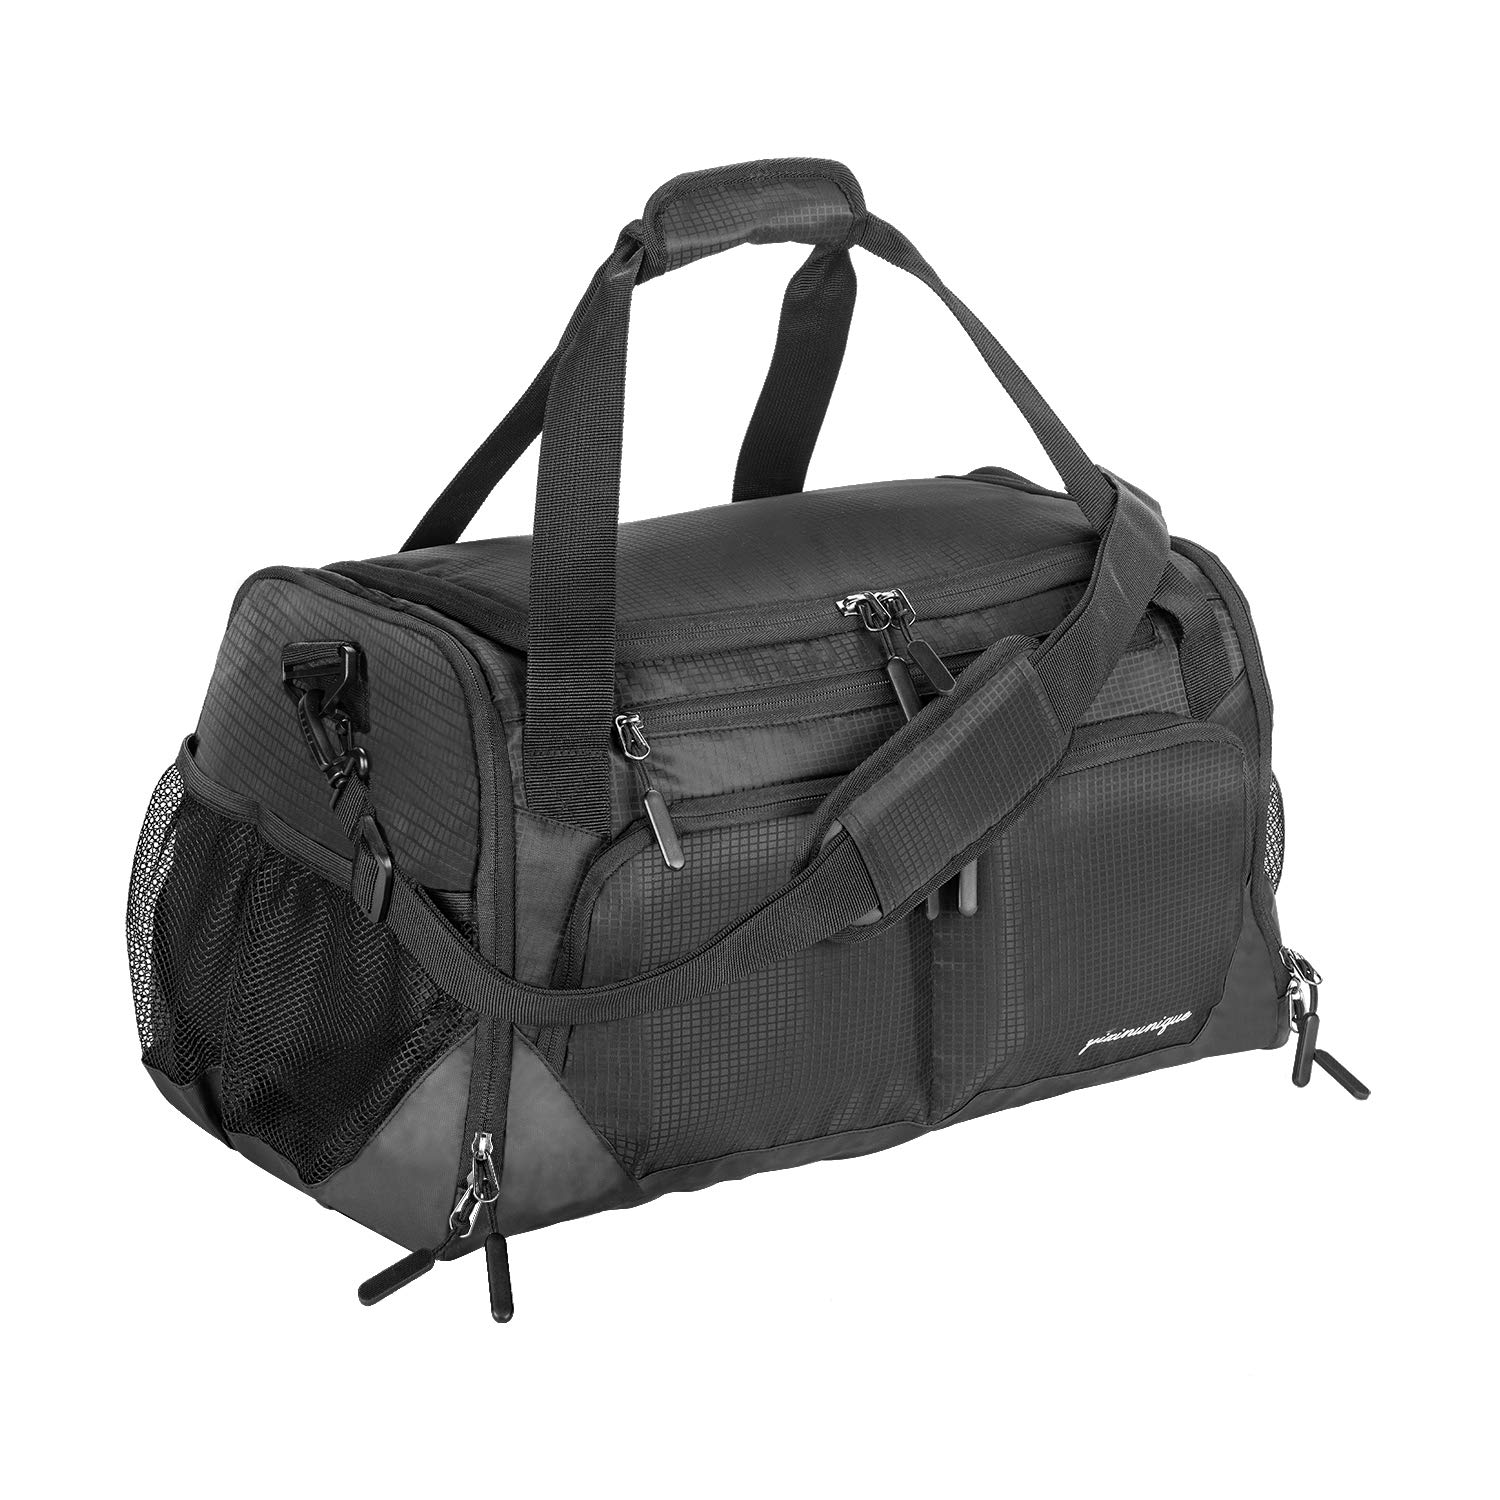 Gym Bag, Sports Duffle Bag with Shoes Compartment & Wet Pocket for Men Women, 35L by yixinunique